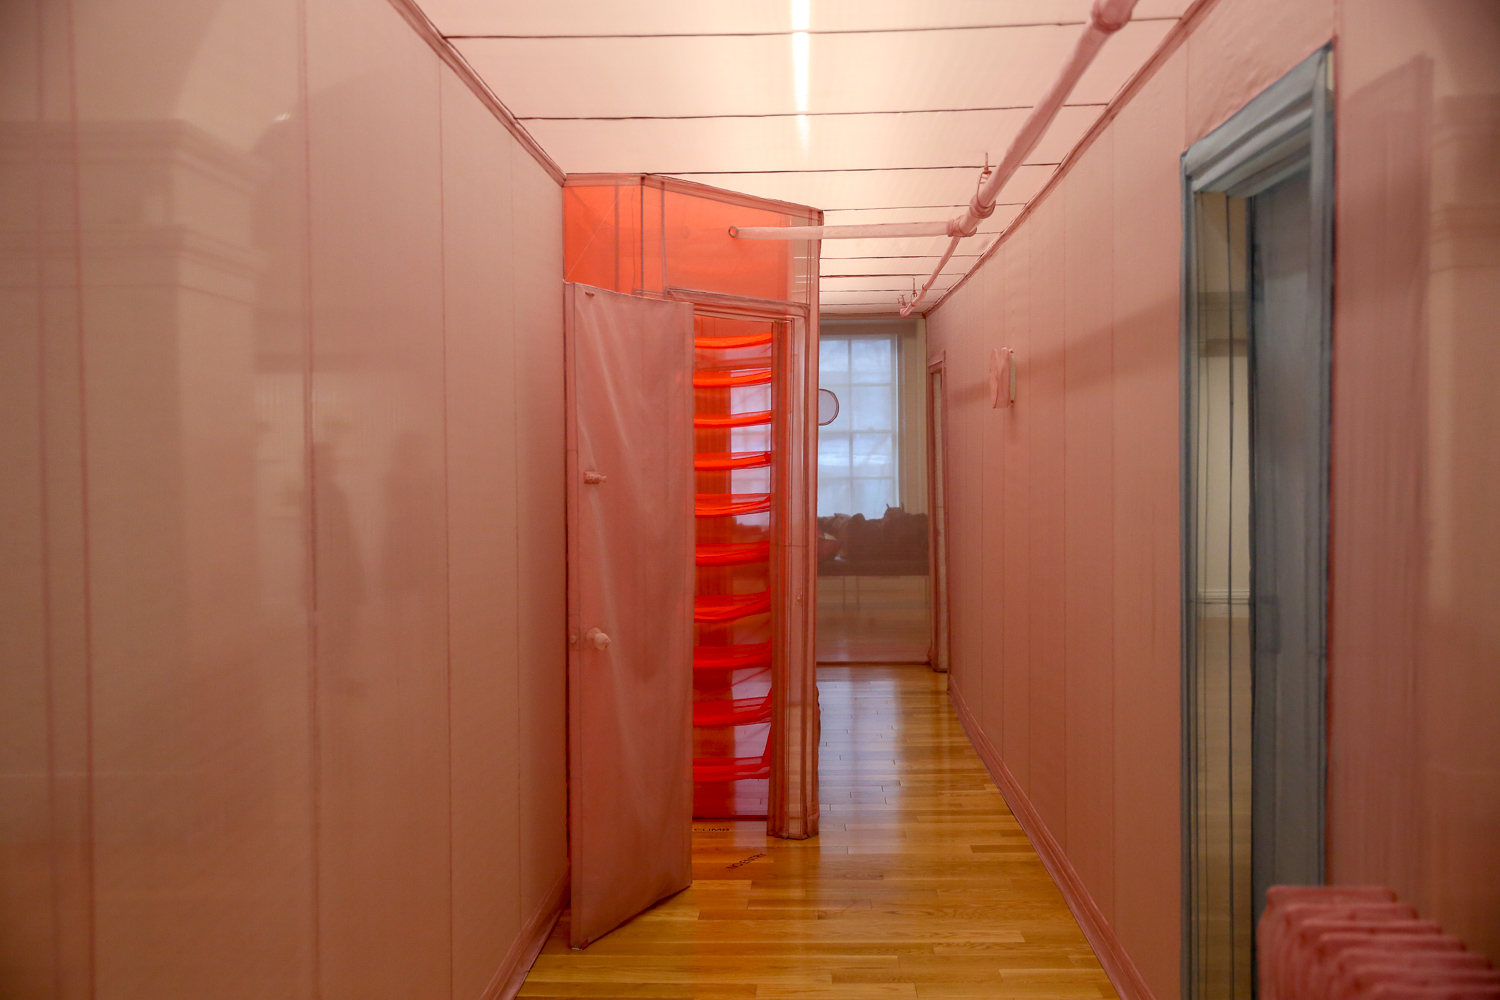 Artist Do Ho Suh has lived in Seoul, Berlin and New York, but his new installation at the Smithsonian American Art Museum speaks to being homesick and on the move. The exhibition, which opens March 16 and closes August 5, features ephemeral, brightly-colored sculptures of hallways that replicate where Suh has lived - hence the name 'Almost Home'. Visitors can walk through the halls of gauzy fabric, but the small details and bright hues are almost a guarantee that the Instagram crowds will be flocking here. However, don't skip out on checking out Suh's other fabric sculptures in the exhibition, which are both quirky and delicate. (Amanda Andrade-Rhoades/DC Refined)